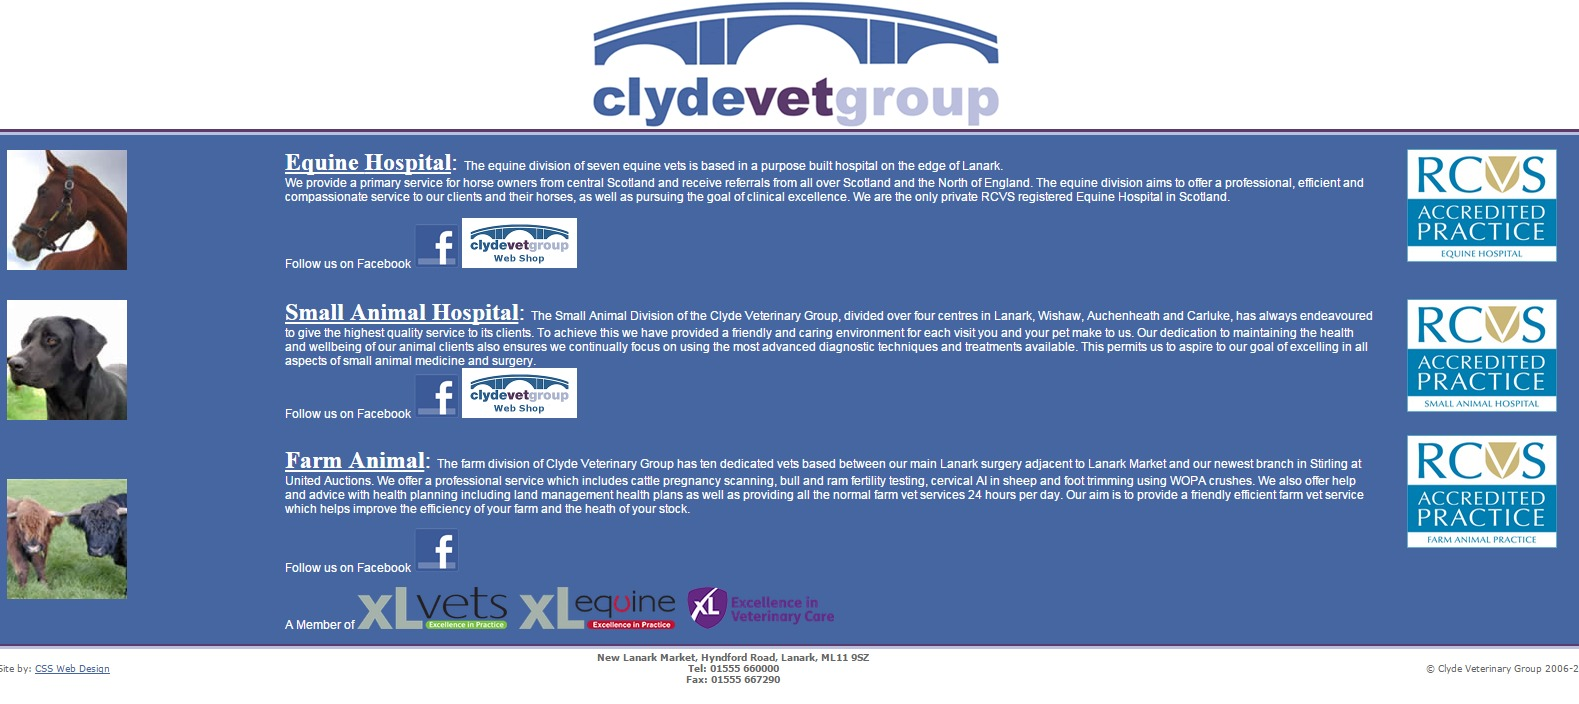 41 Clyde Veterinary Group  Lanark. Equine hospital. Equine vets. Farm and small animal vets Lanarkshire